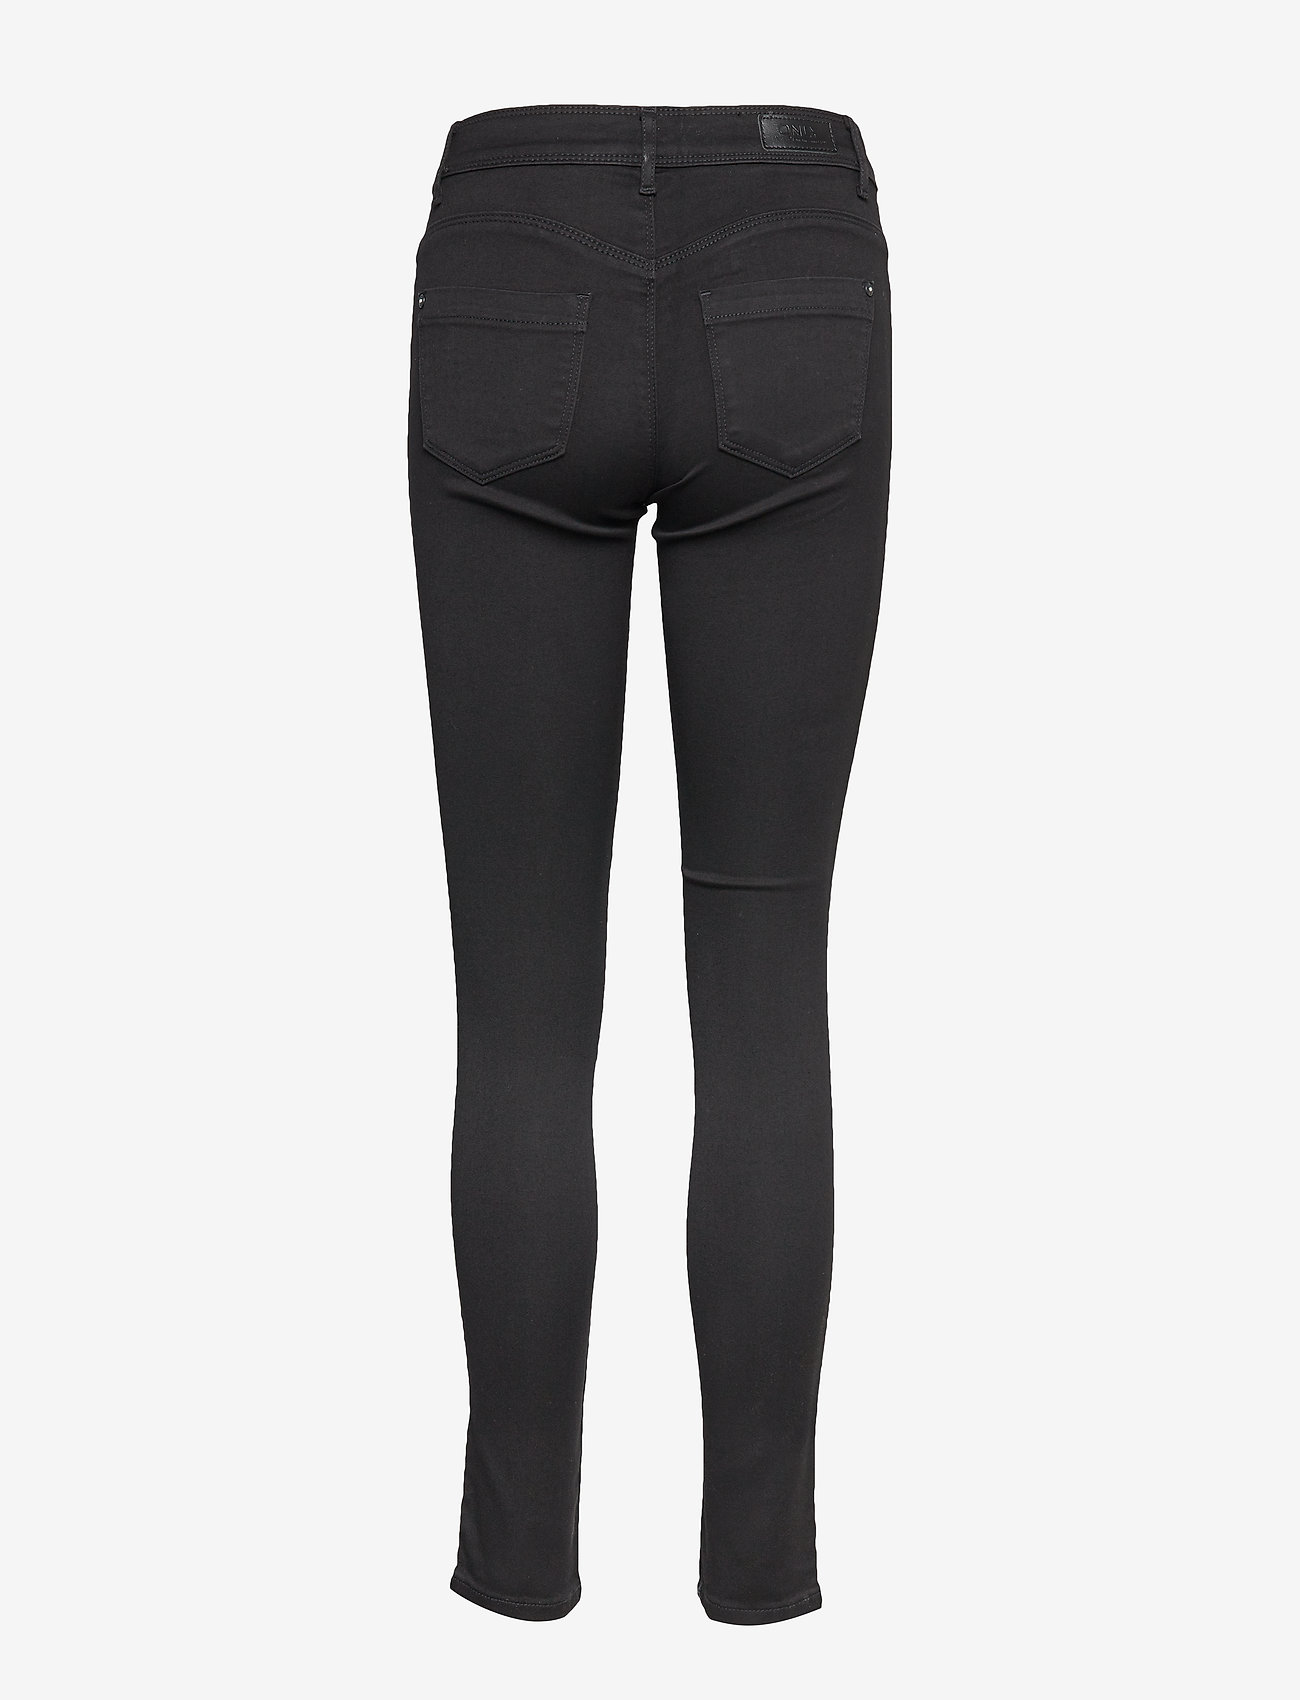 ONLY - onlULTIMATE KING REG JEANS CRY100 NOOS - dżinsy skinny fit - black denim - 1